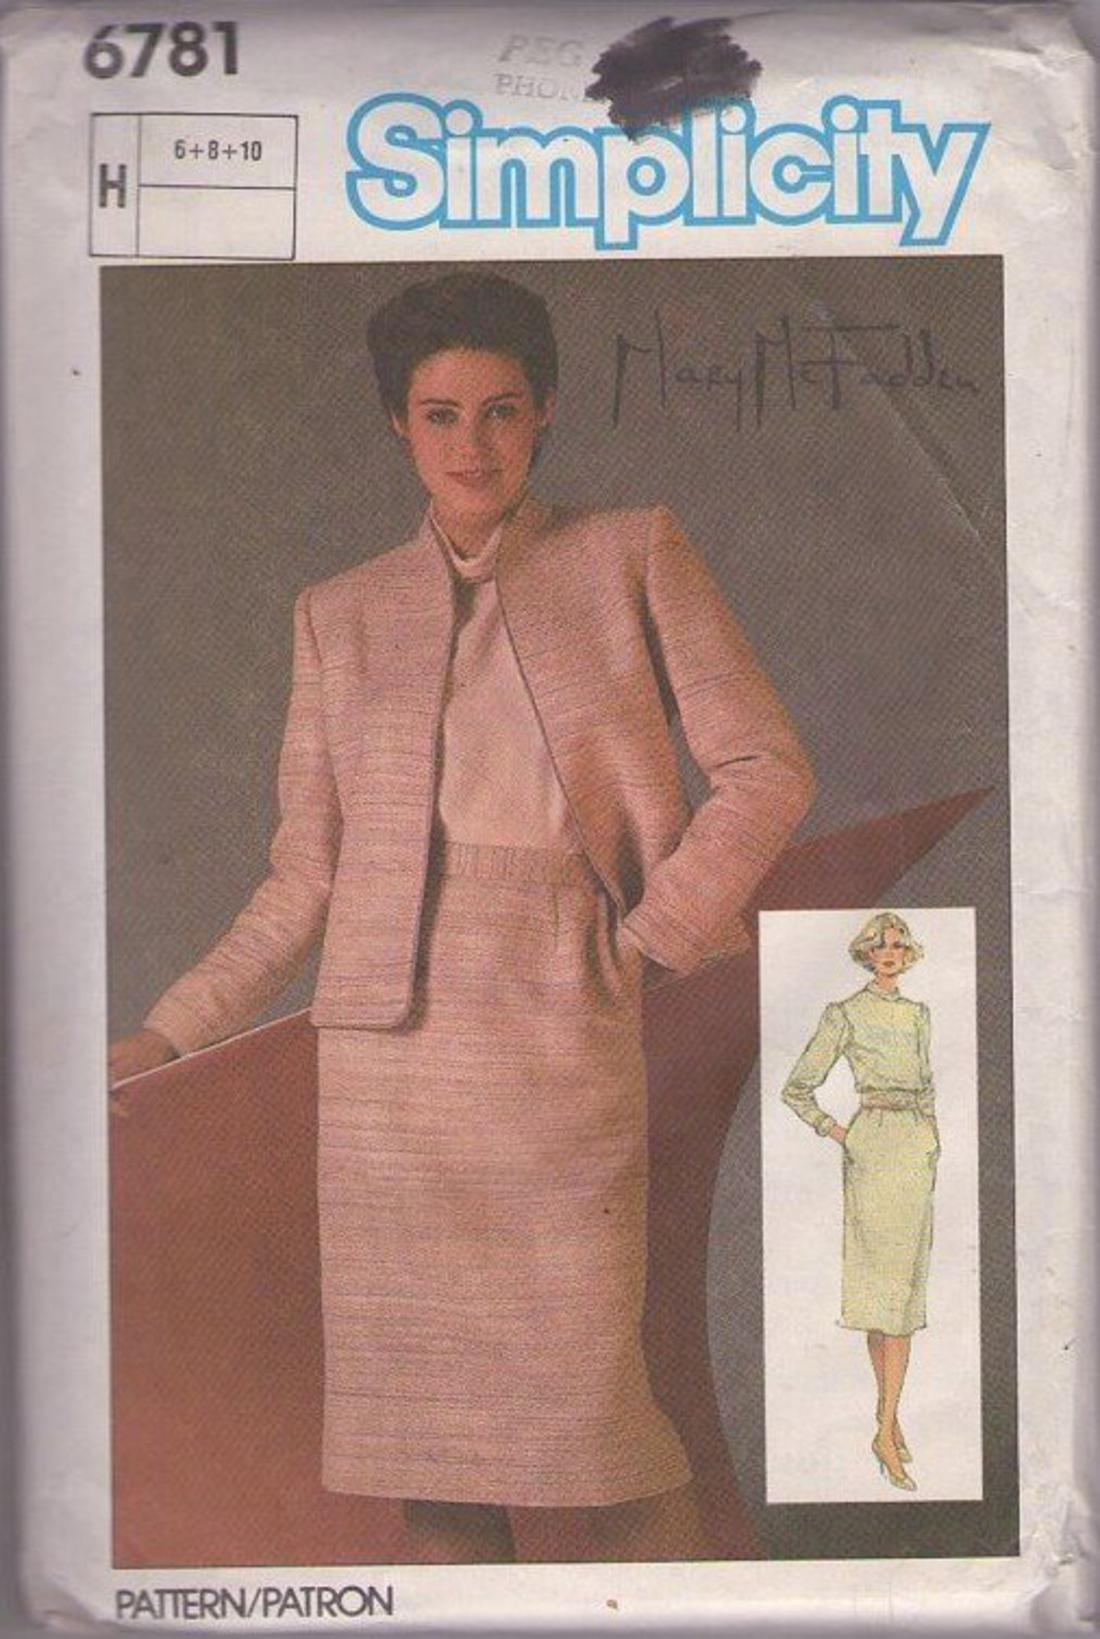 Momspatterns Vintage Sewing Patterns Simplicity 6781 80 S Pattern Chic Designer Mary Mcfadden 3 Piece Suit Dress Roll Collar Blouse